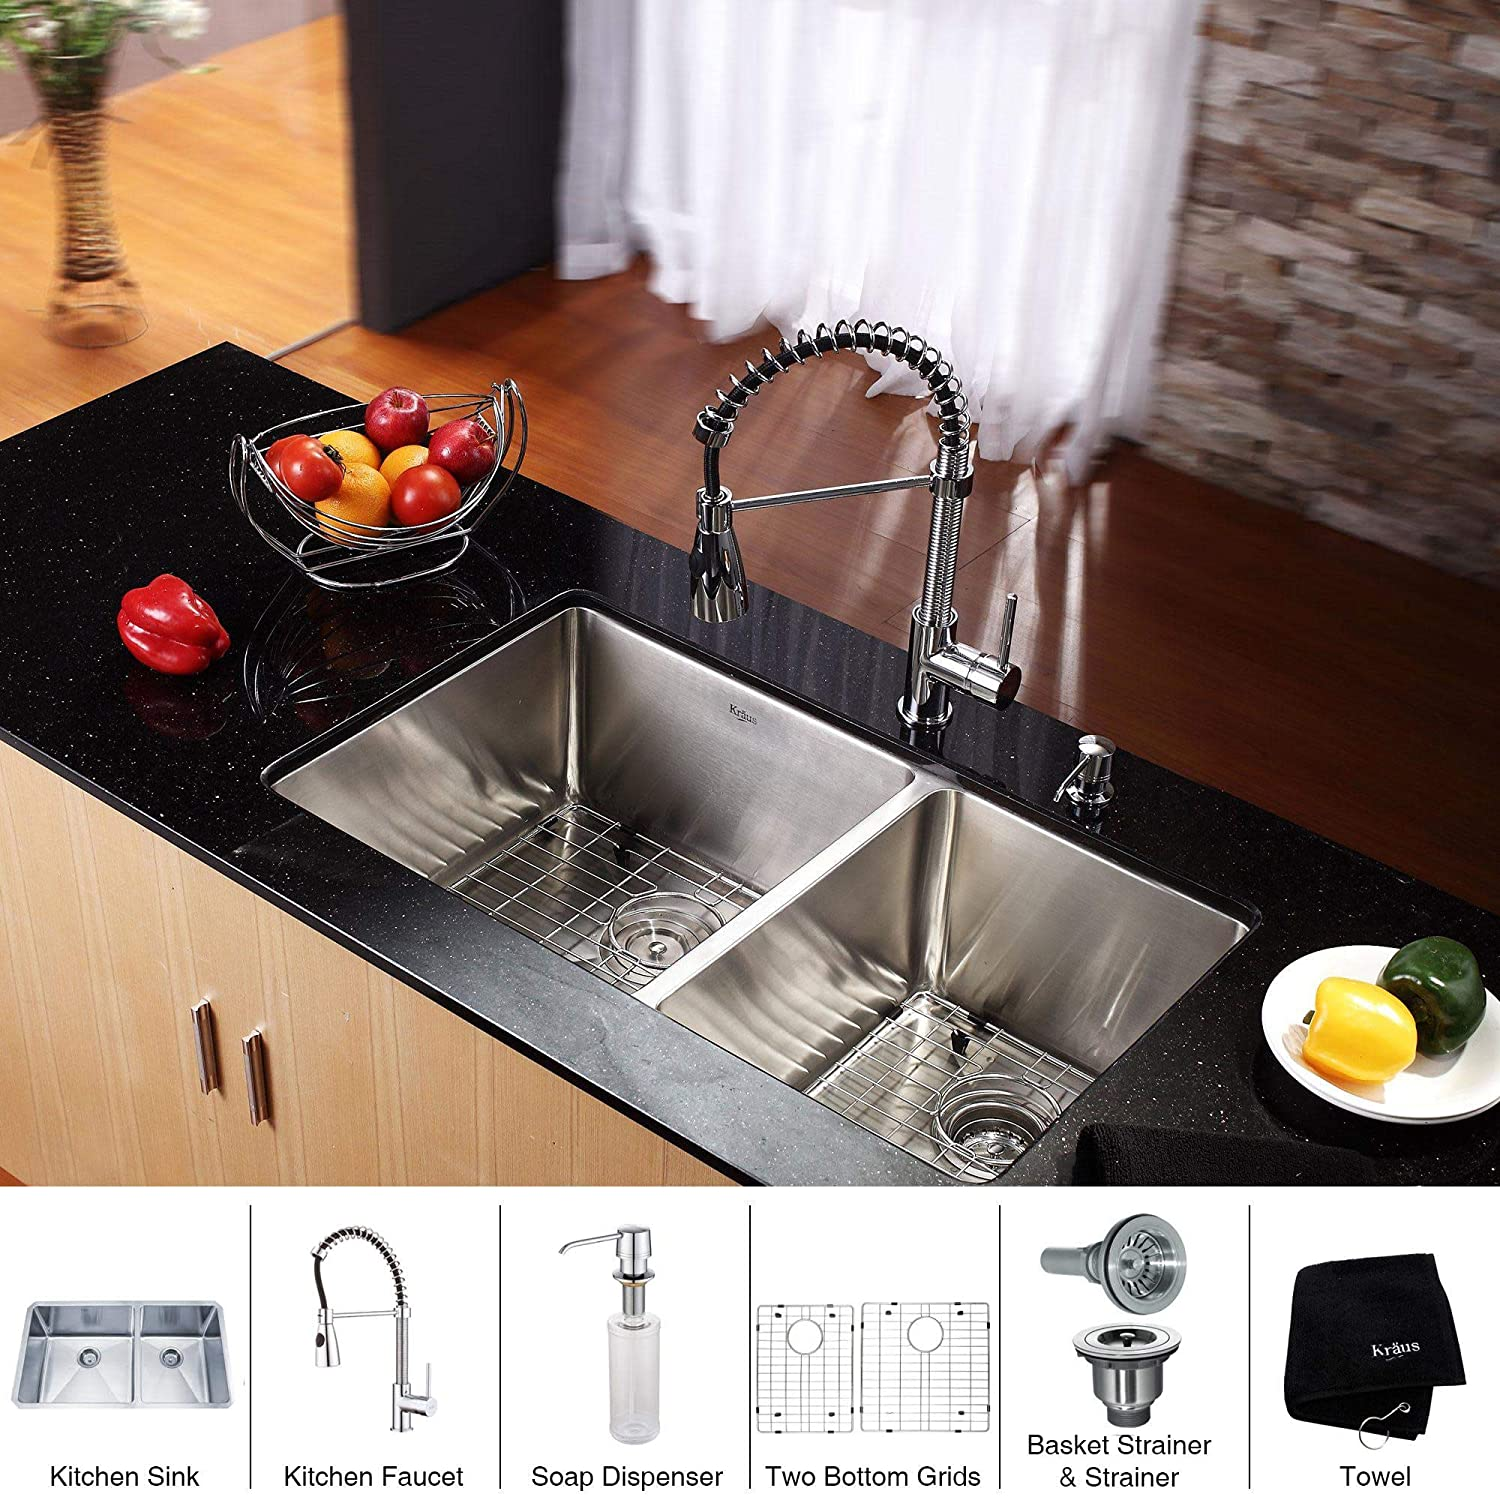 Kraus KHU103-33-KPF1612-KSD30CH 33 inch Undermount Double Bowl Stainless Steel Kitchen Sink with Chrome Kitchen Faucet and Soap Dispenser